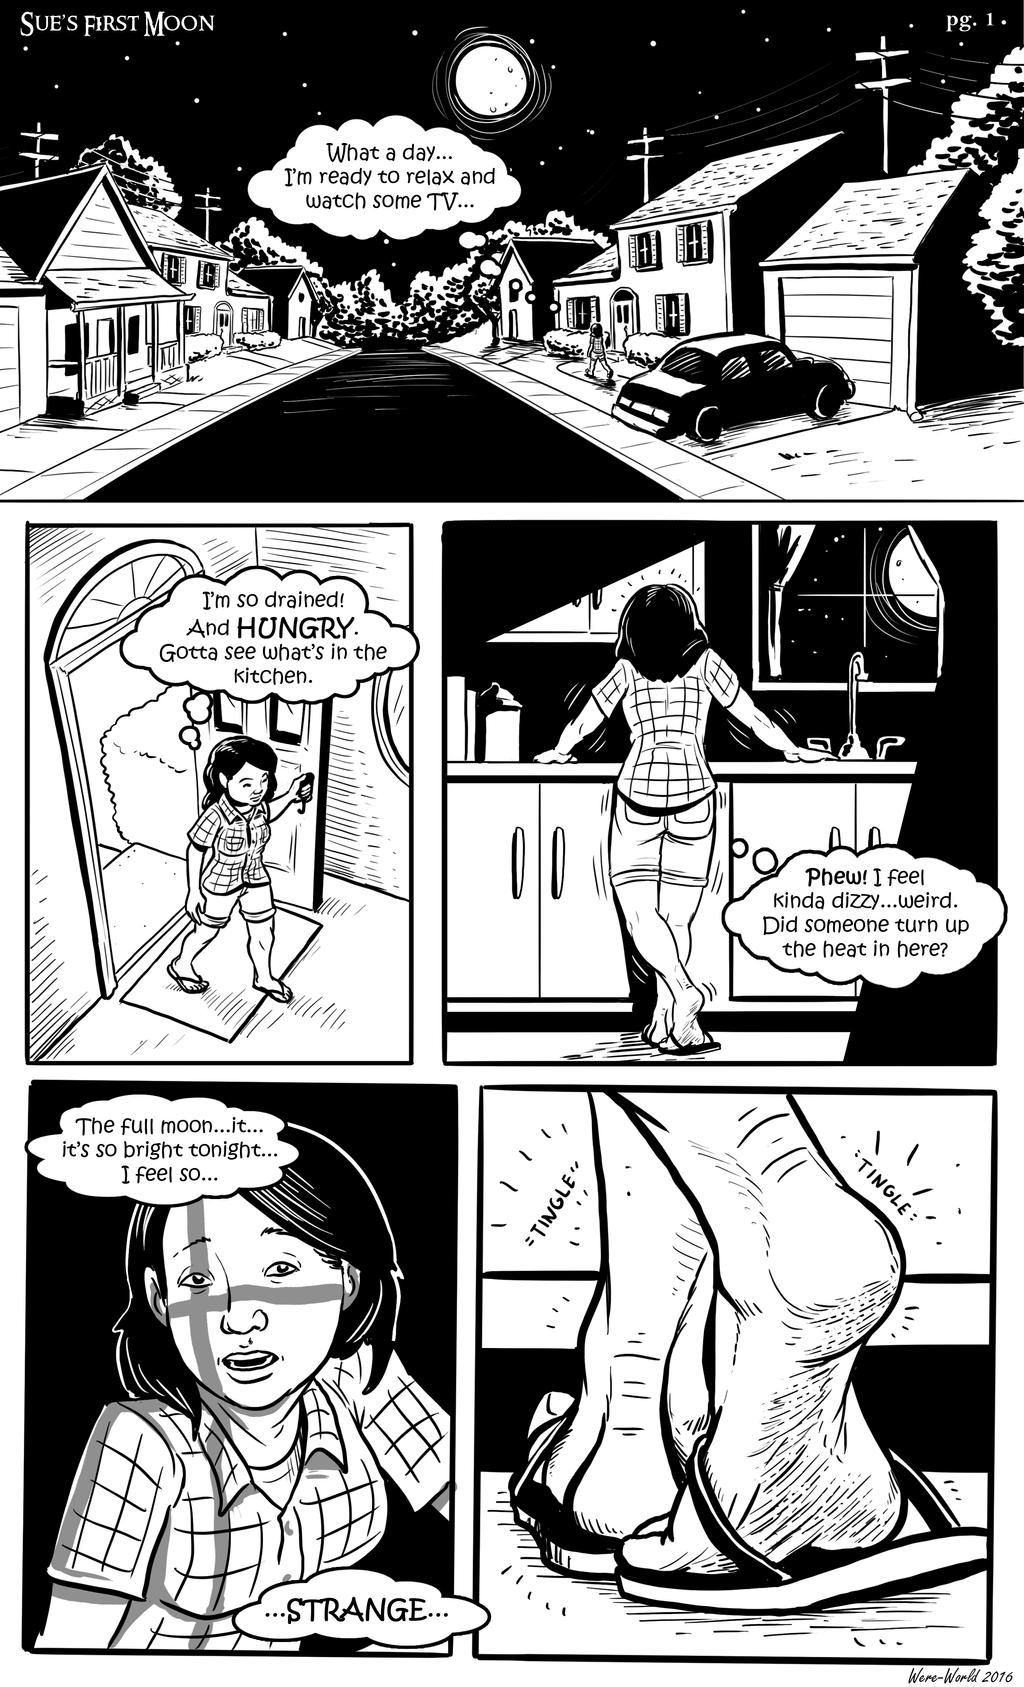 Sue's First Moon pg1 by Were-World